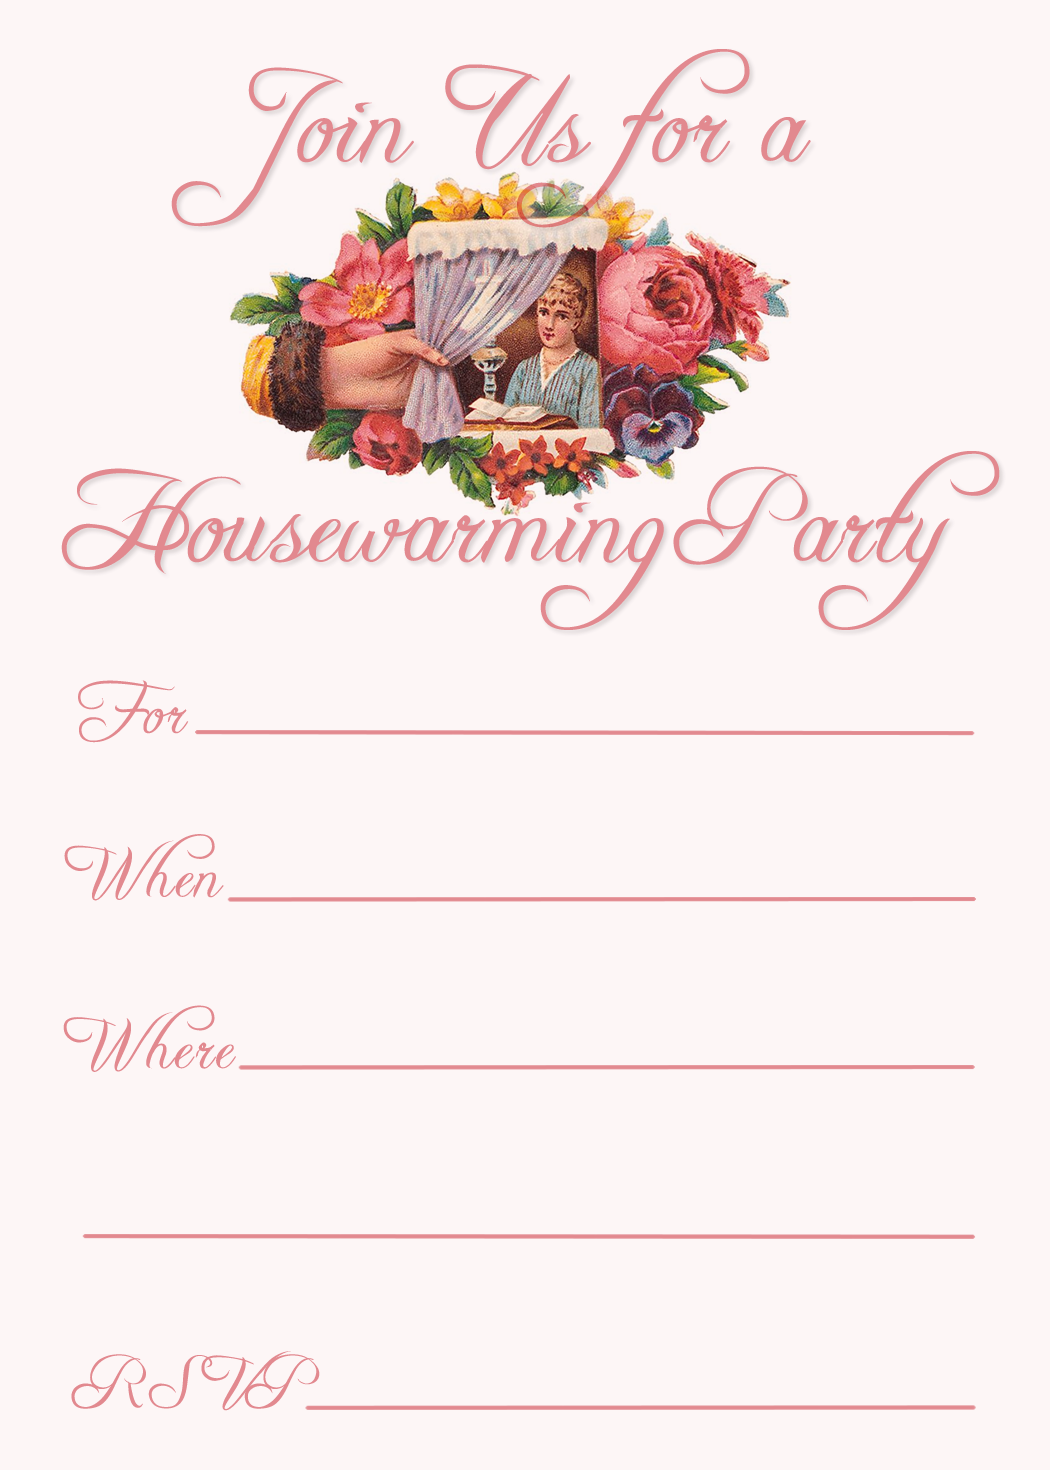 Free Printable Housewarming Party Invitations | Housewarming party ...